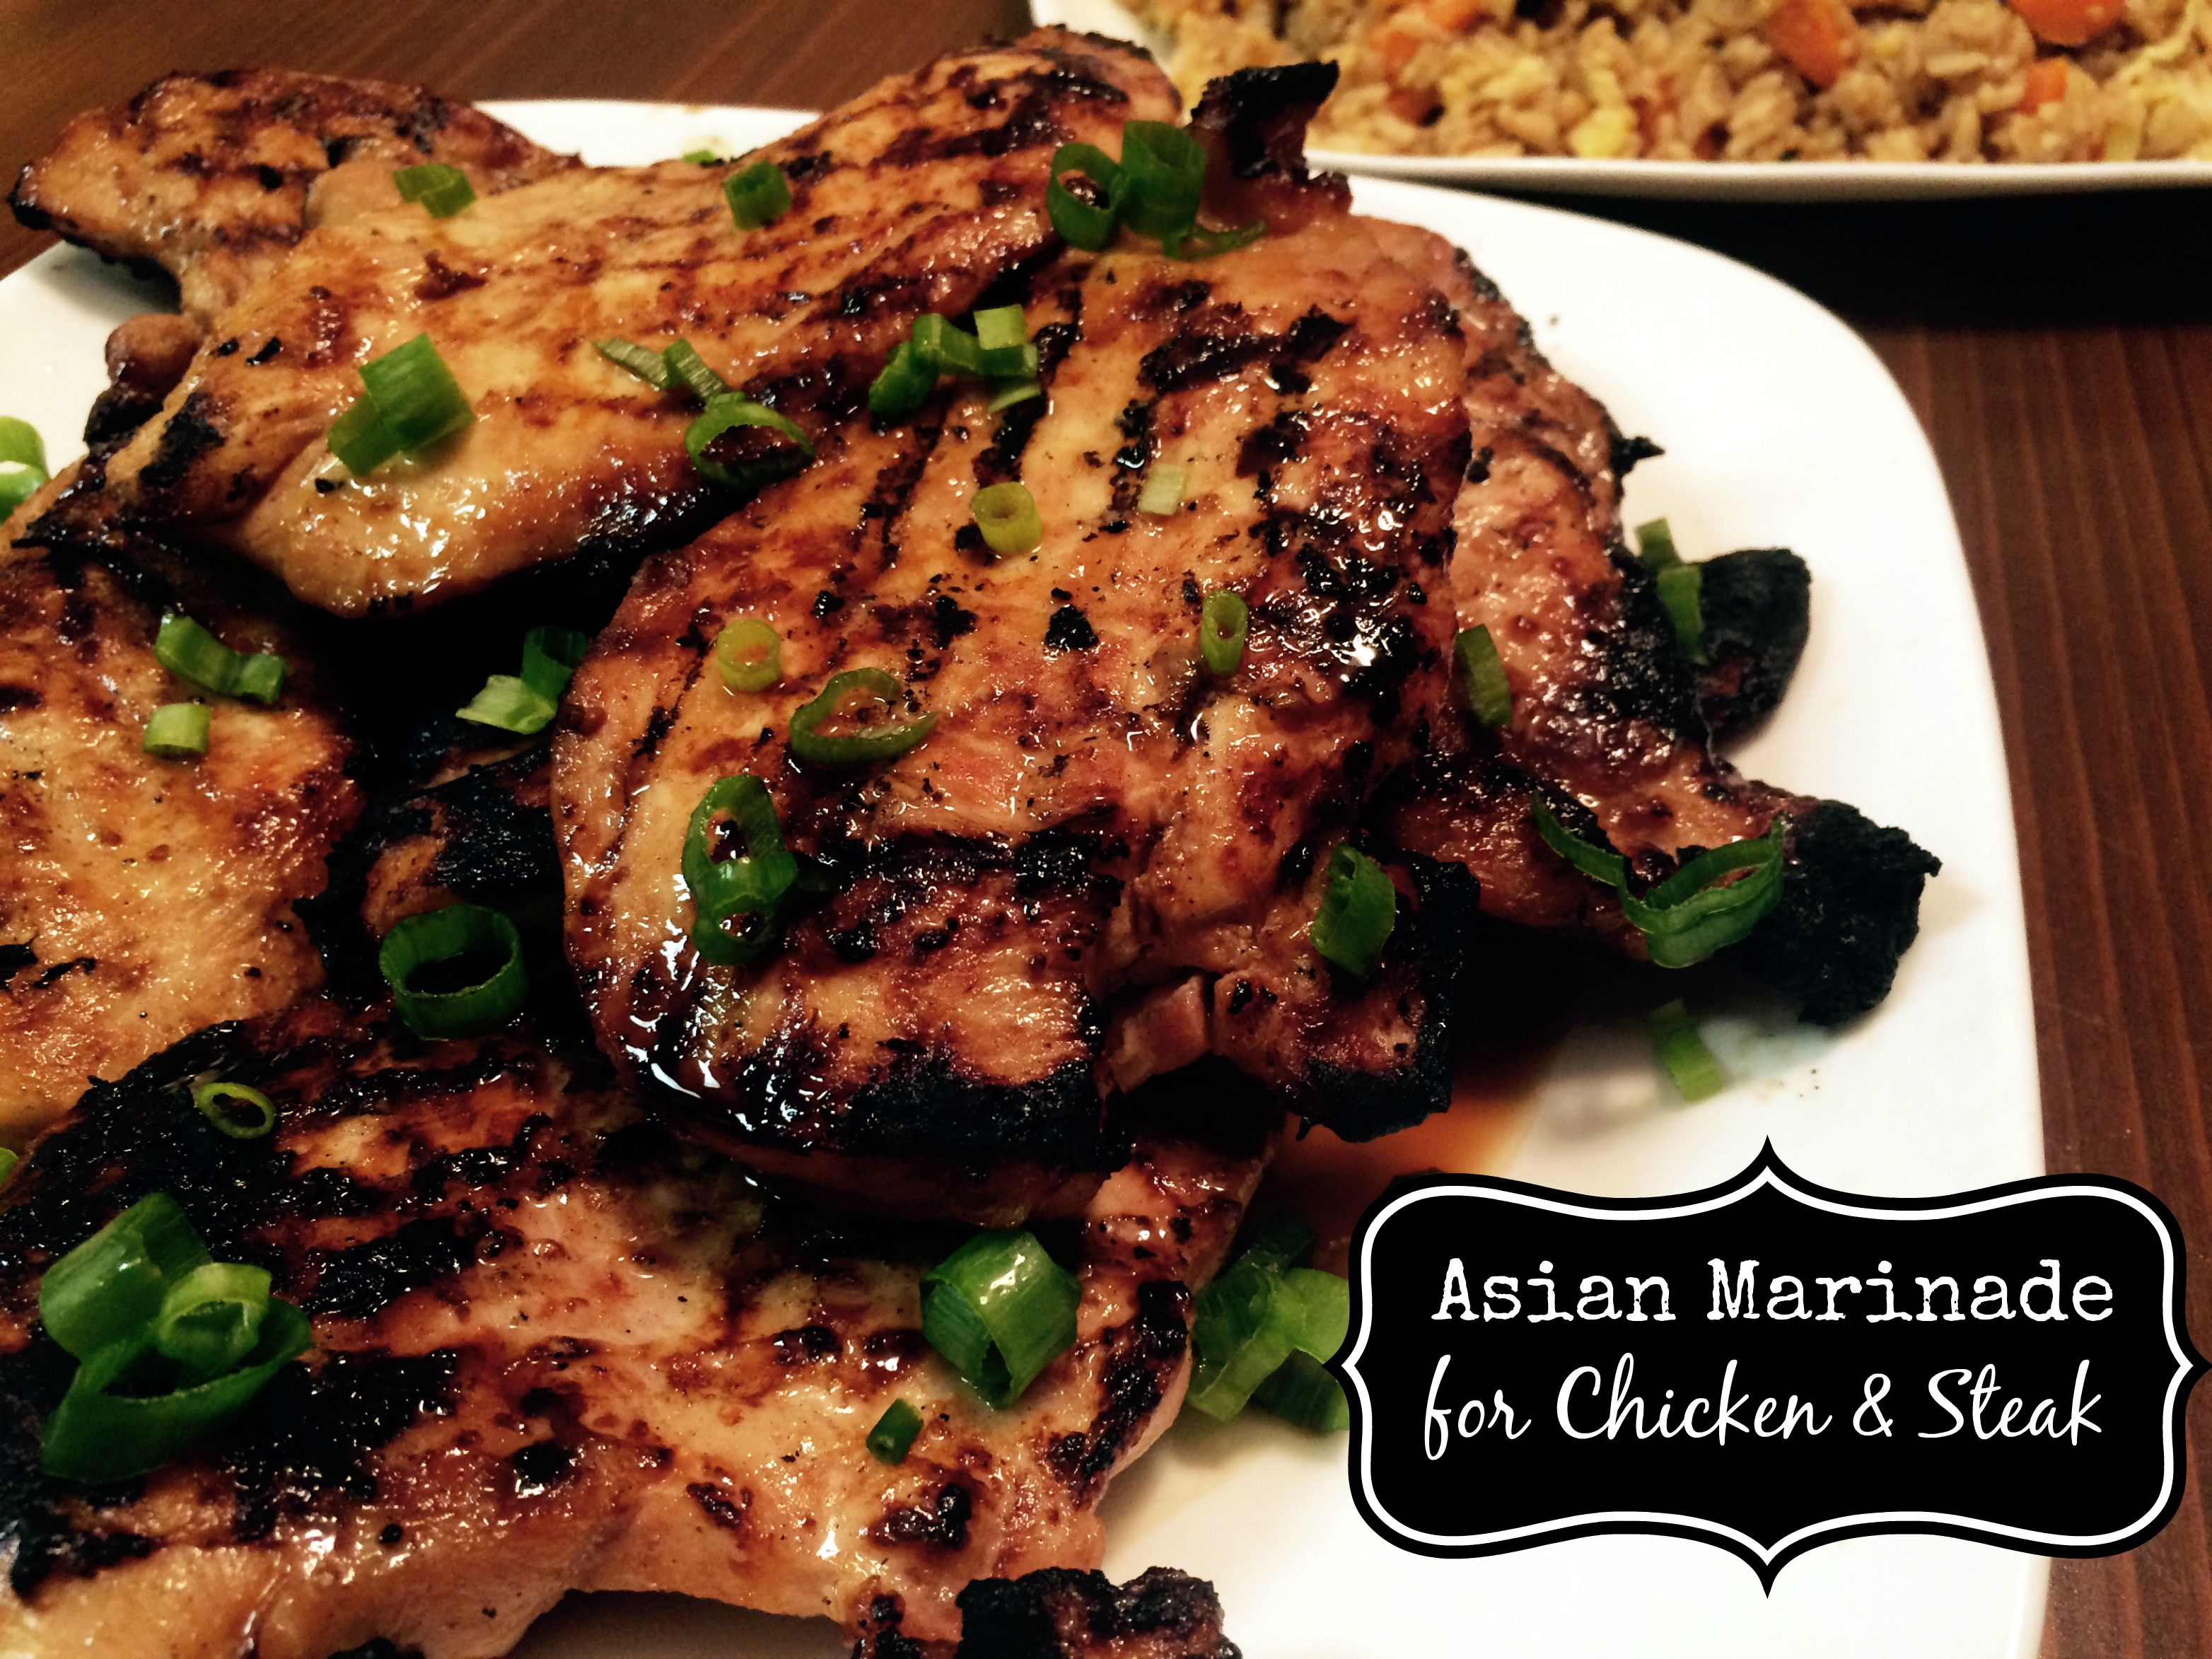 Asian Marinade for Chicken & Steak